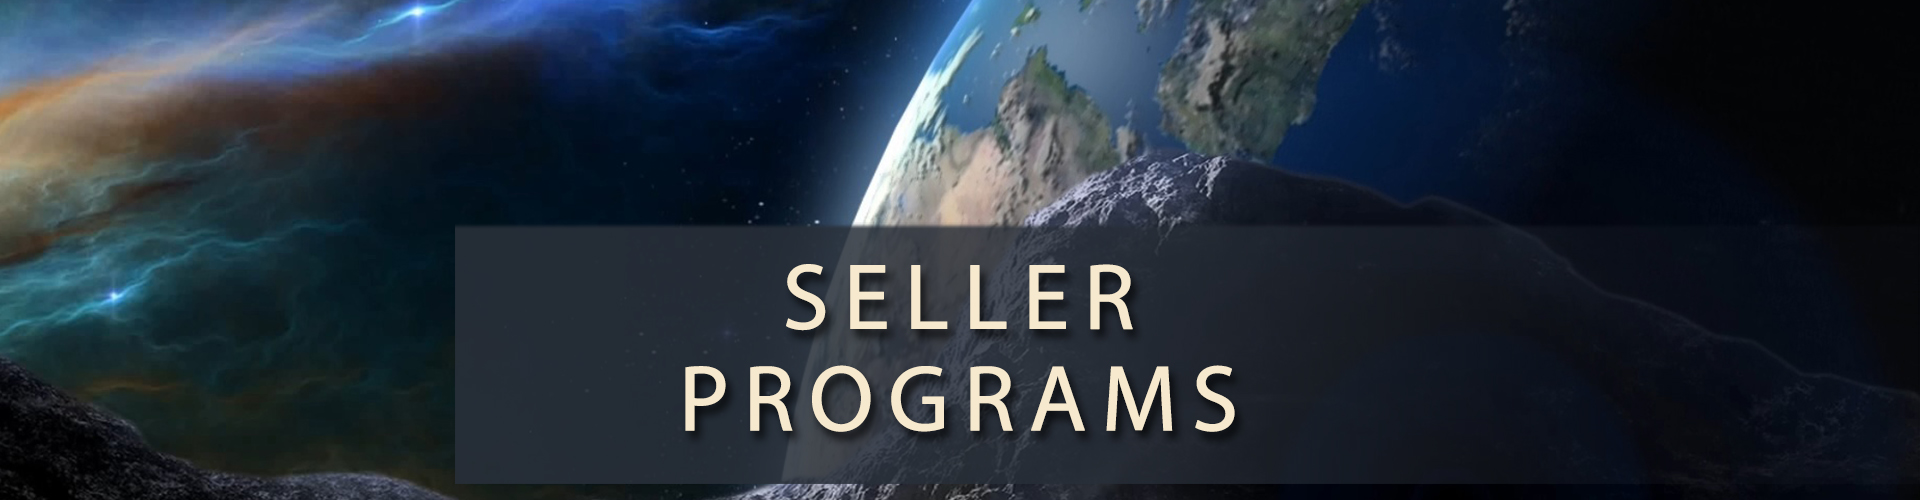 Trusted wholesaler program